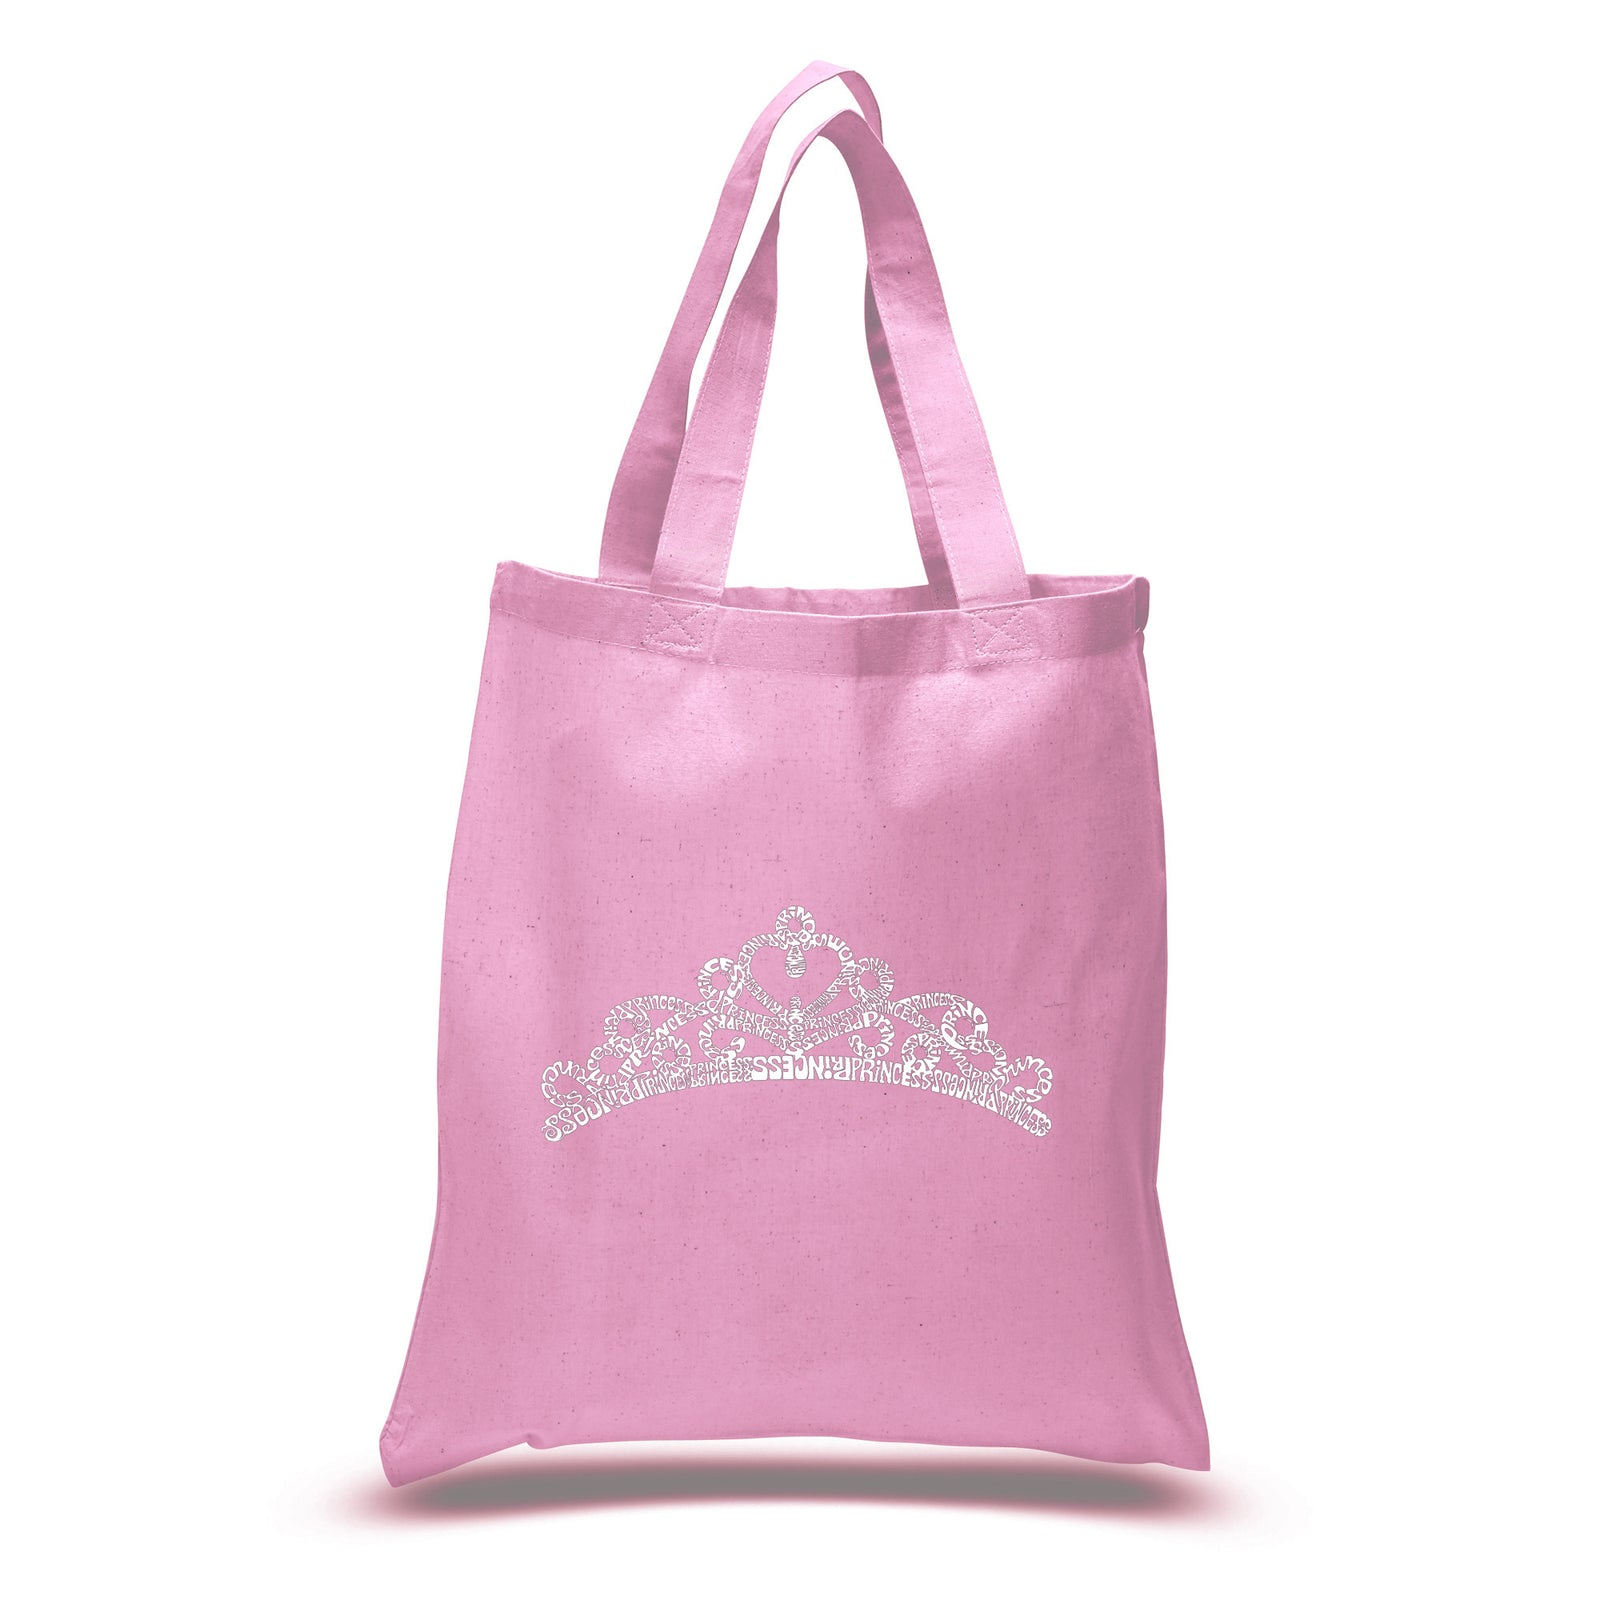 Los Angeles Pop Art Small Tote Bag - Princess Tiara